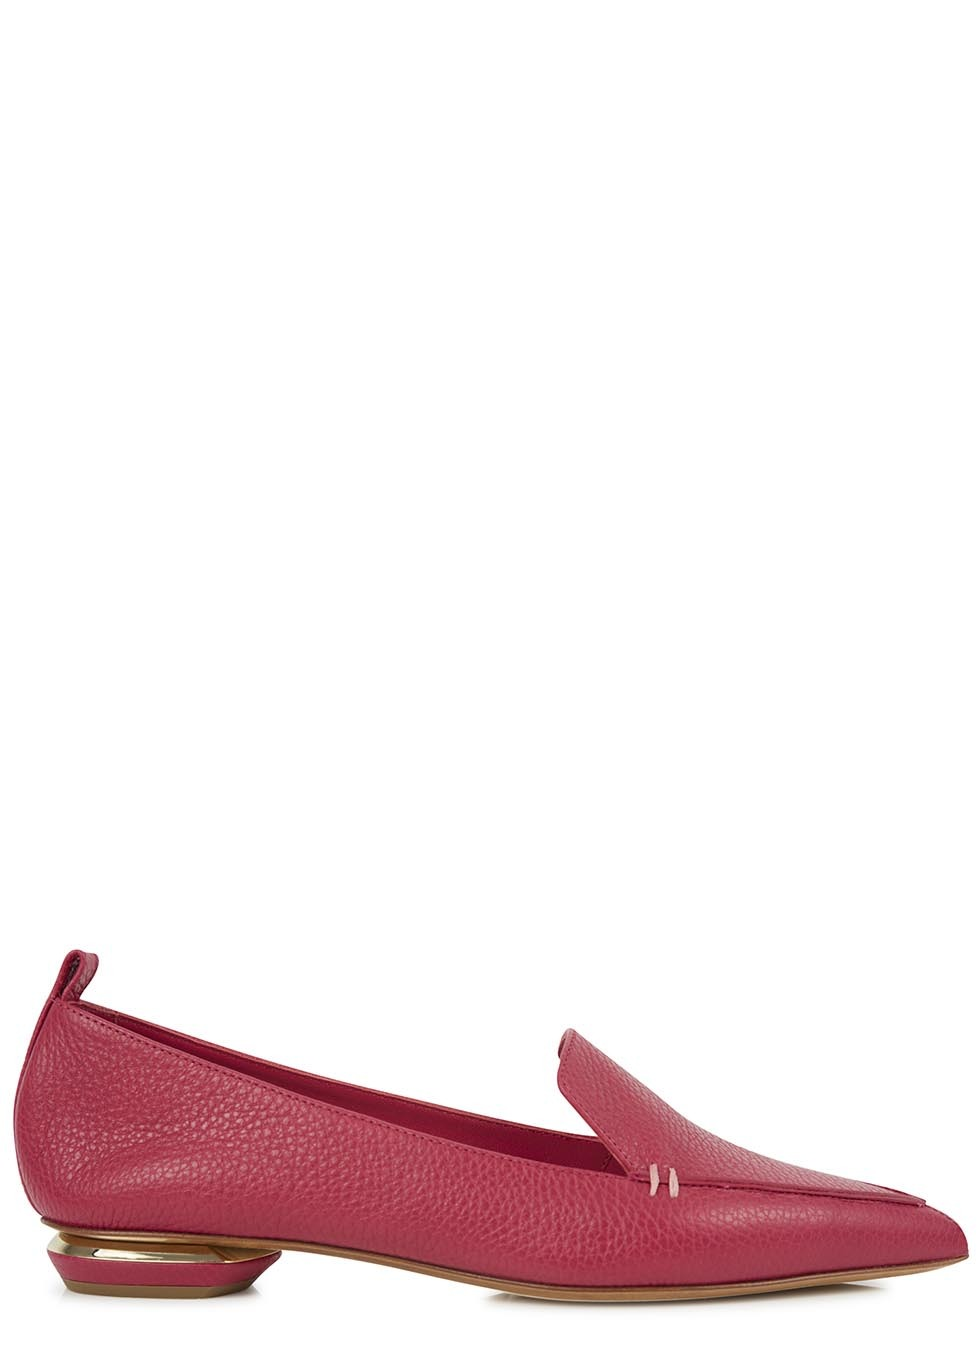 Dark Pink Pointed Leather Loafers - occasions: casual, work, creative work; material: leather; heel height: flat; toe: pointed toe; style: loafers; finish: plain; pattern: plain; embellishment: chain/metal; predominant colour: dusky pink; season: s/s 2014